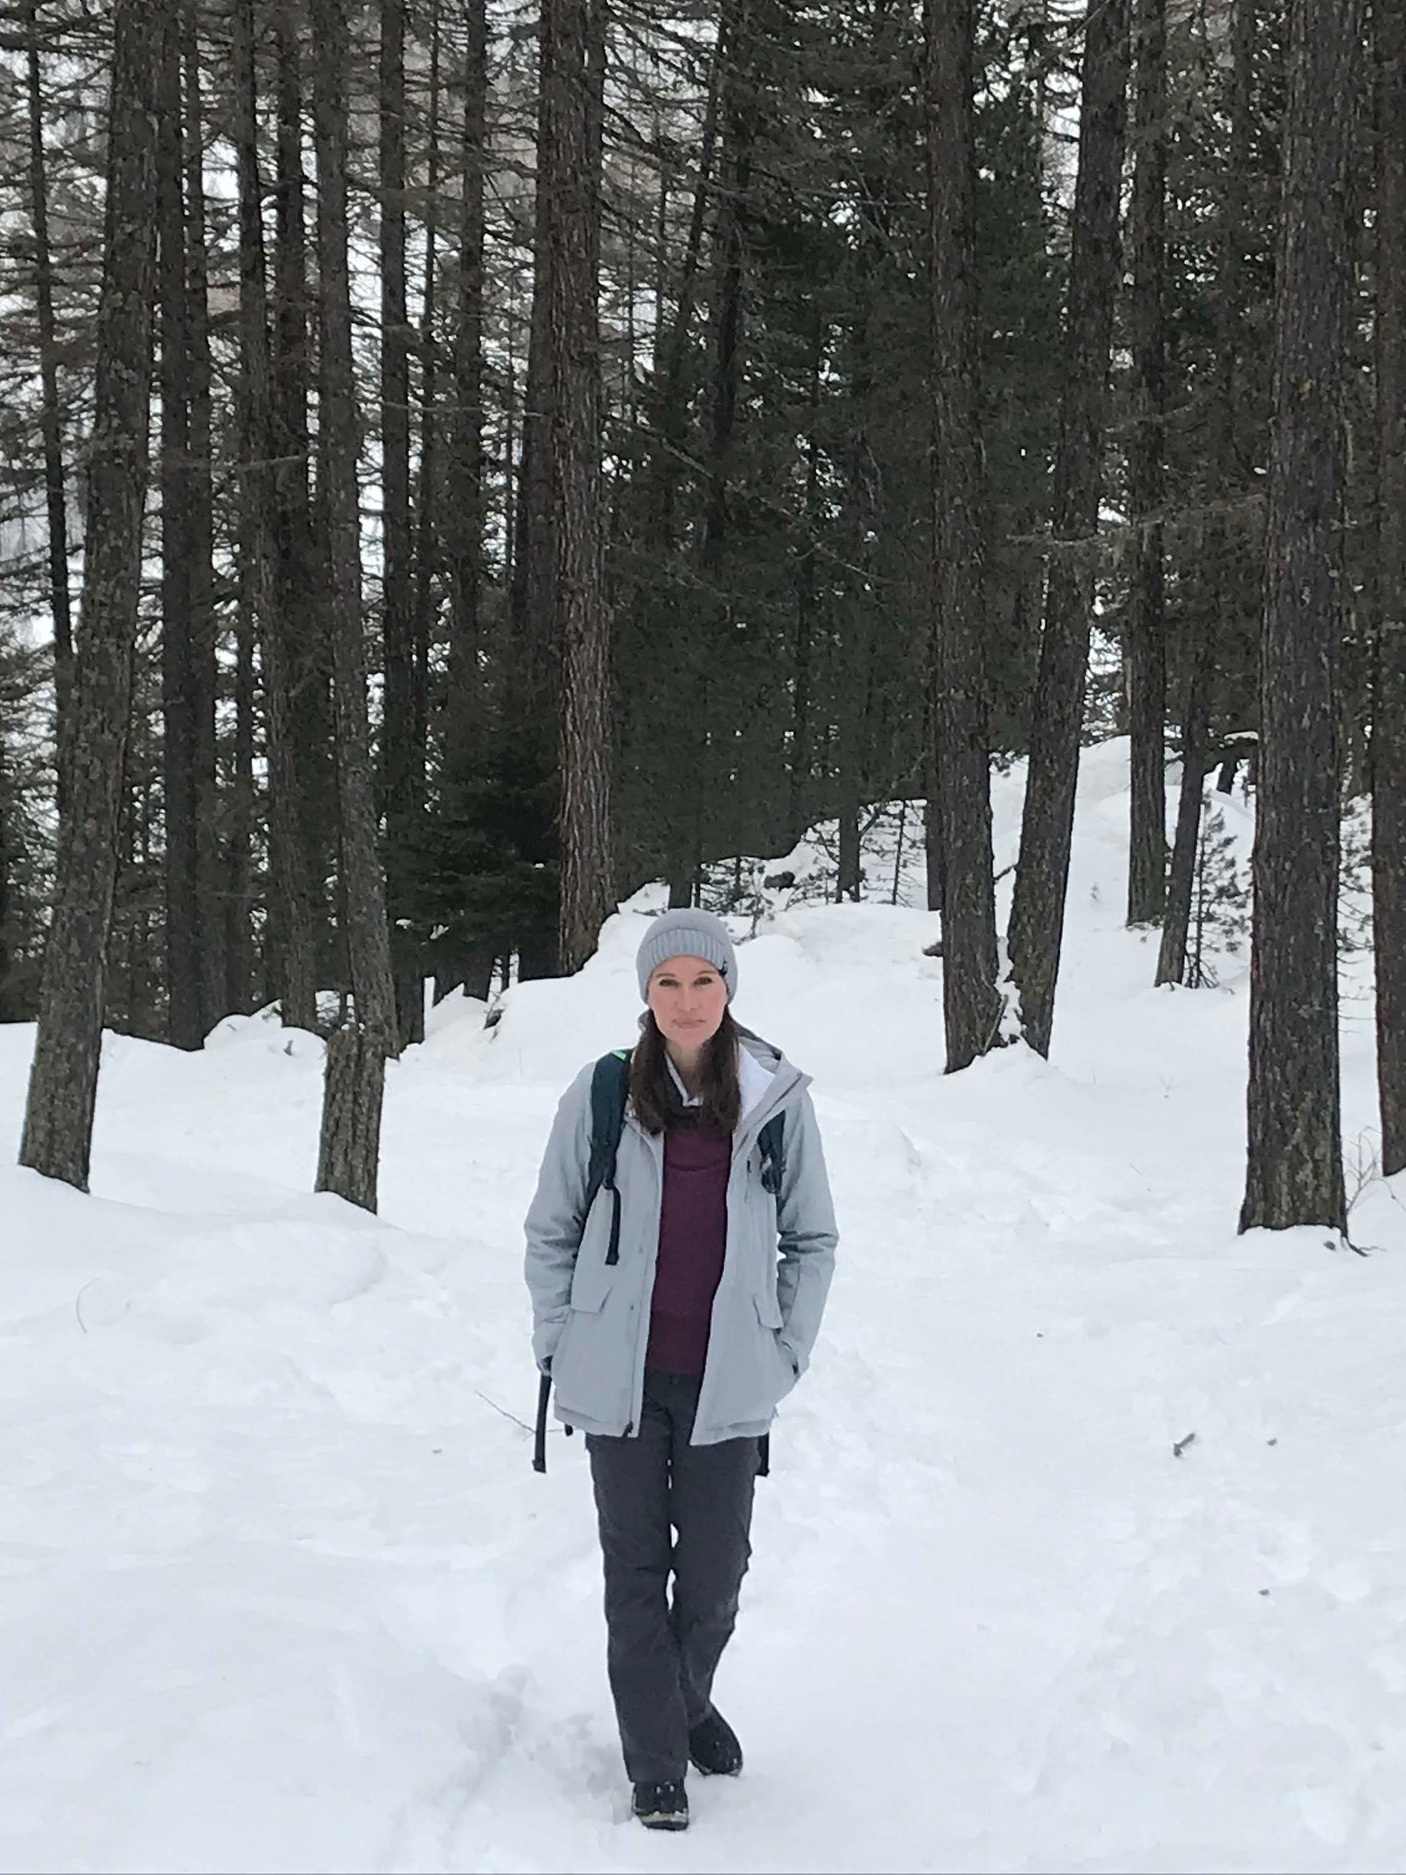 Snowy winter hike up to Sunnega (midway at Tiefenmatten)